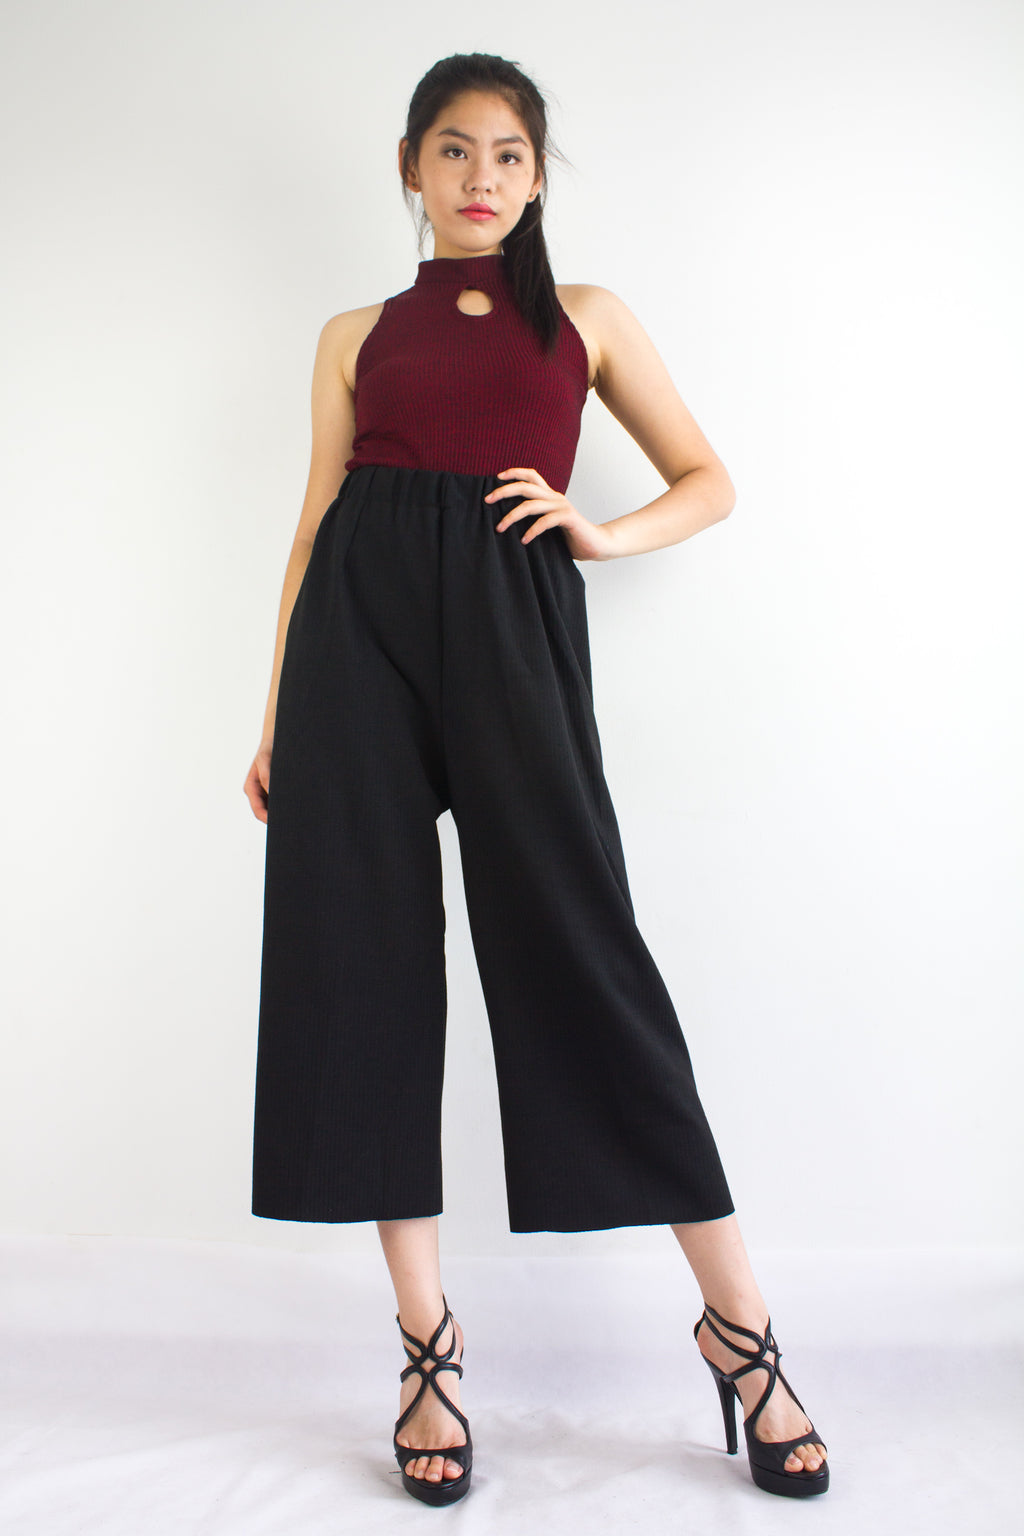 Let's Hang Culottes in Black - BOTTOMS - Peep Boutique